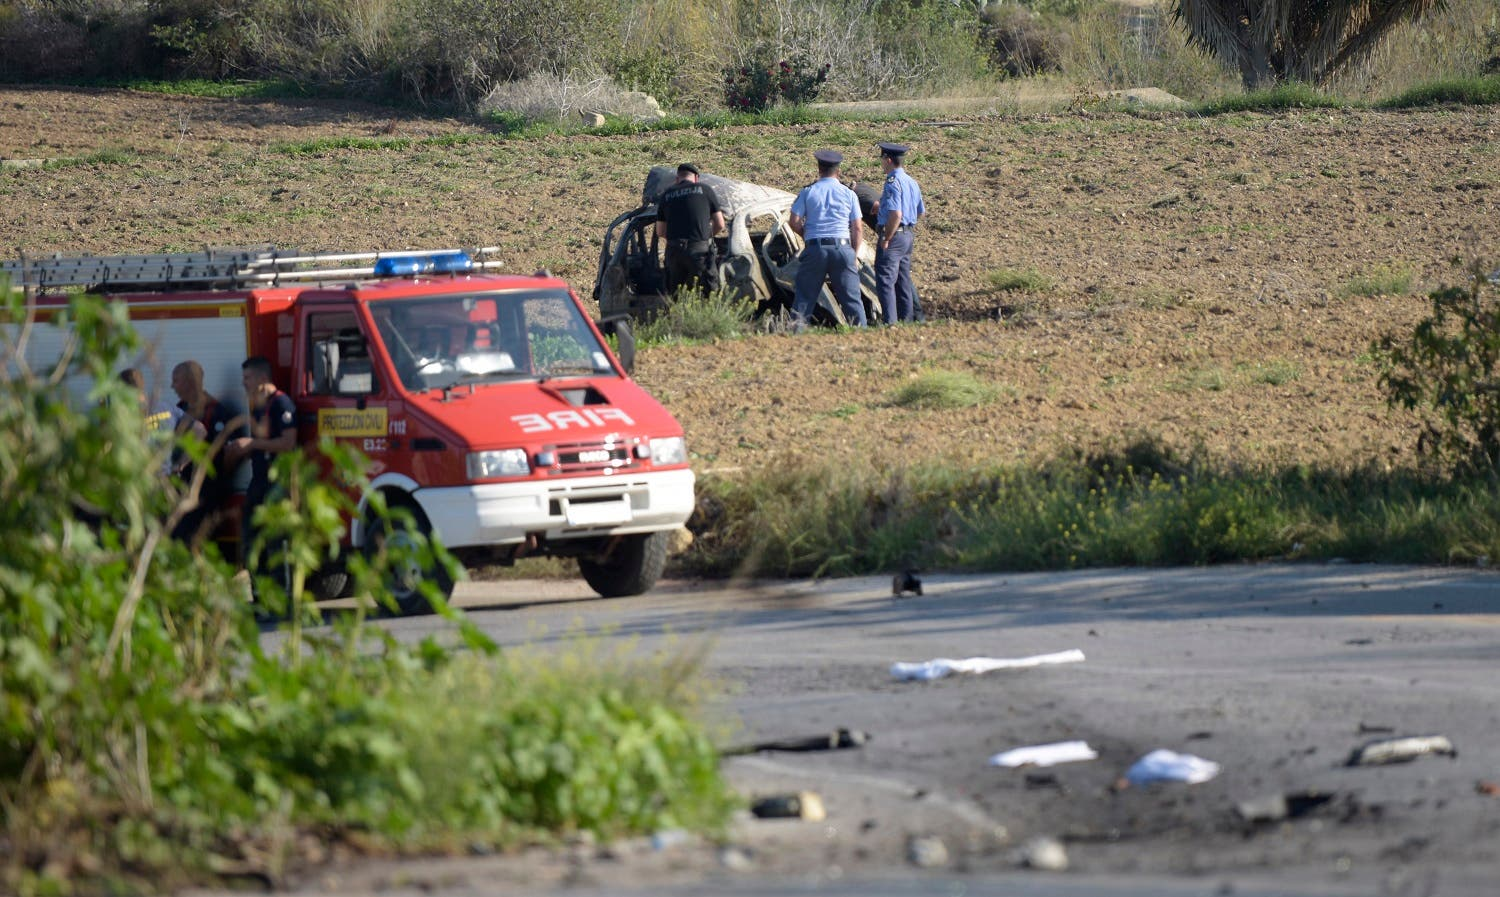 Police inspect the wreckage of a car bomb believed to have killed journalist and blogger Daphne Caruana Galizia close to her home in Bidnija, Malta? on October 16, 2017. The force of the blast broke her car into several pieces and catapulted the journalist's body into a nearby field, witnesses said. She leaves a husband and three sons. Caruana Galizia's death comes four months after Prime Minister Joseph Muscat's Labour Party won a resounding victory in a general election he called early as a result of scandals to which Caruana Galizia's allegations were central. (AFP)